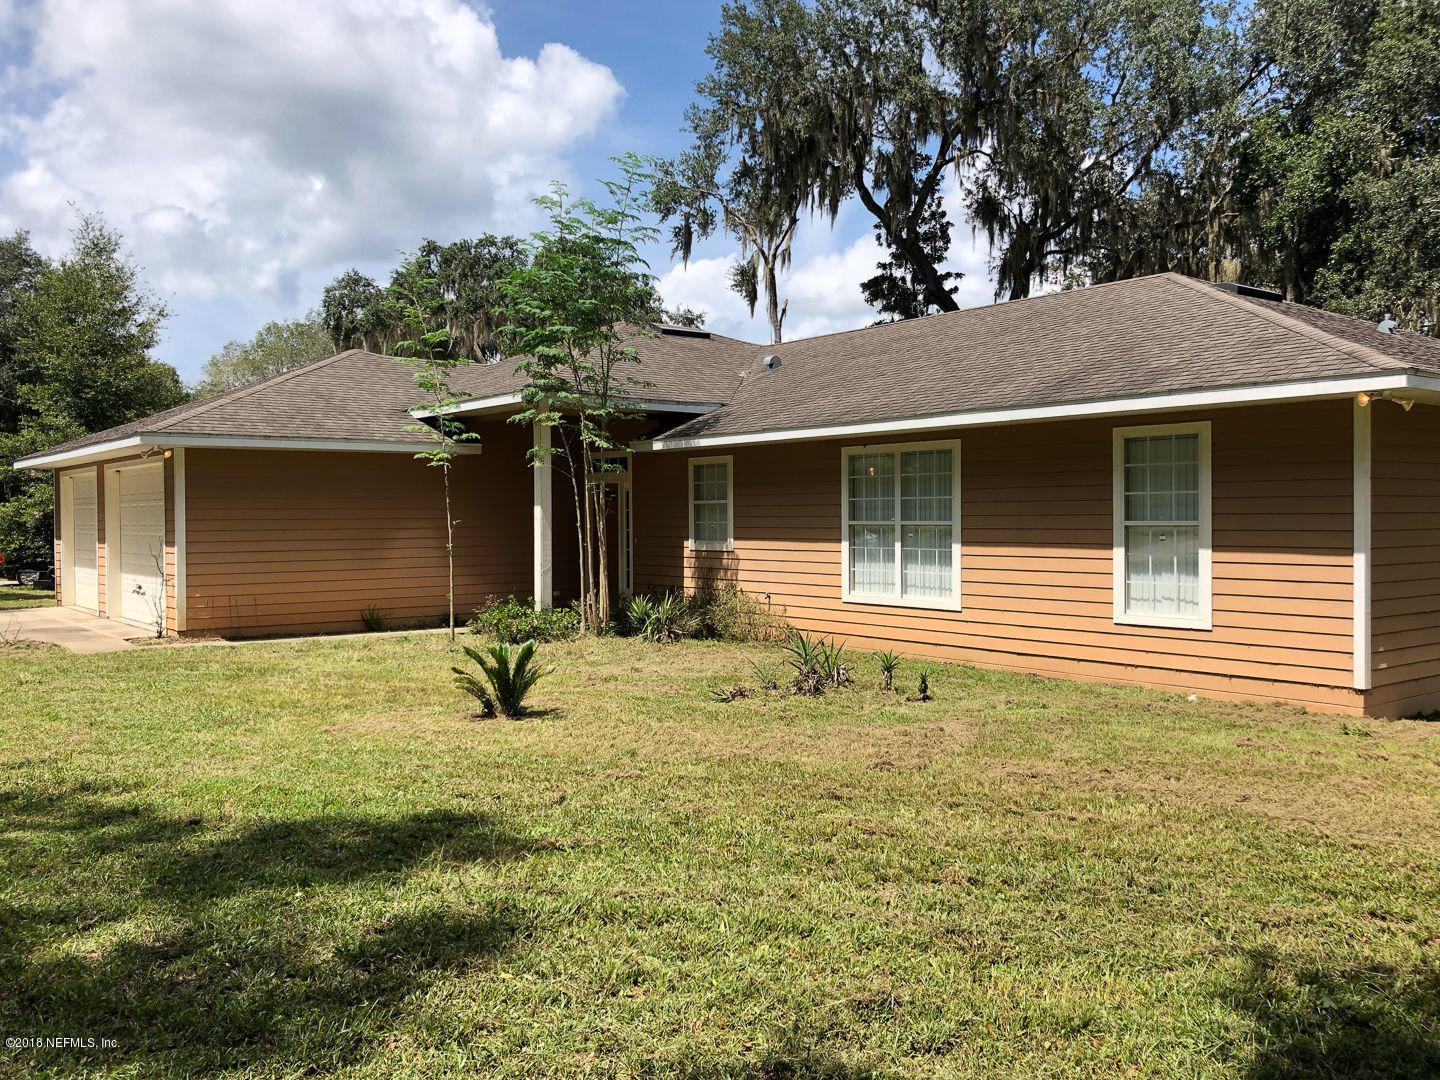 24430 101, HAWTHORNE, FLORIDA 32640, 3 Bedrooms Bedrooms, ,2 BathroomsBathrooms,Residential - single family,For sale,101,956315